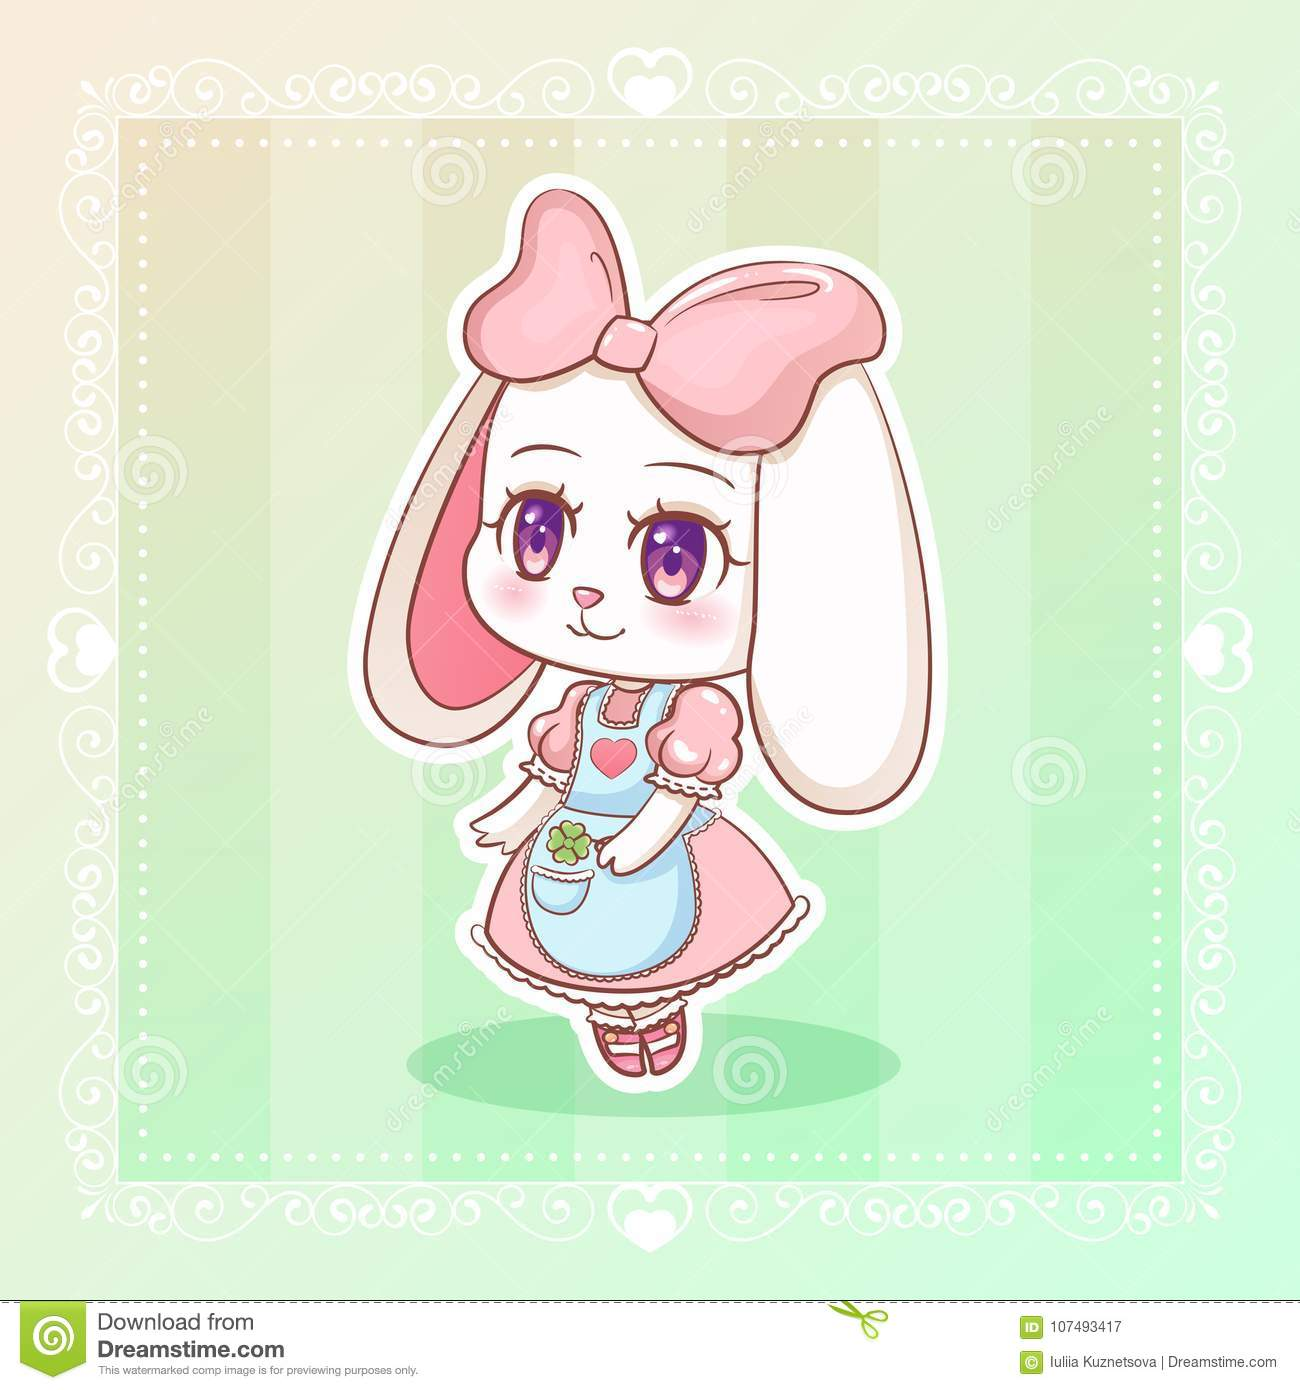 Sweet Rabbit Little Cute Kawaii Anime Cartoon Bunny Girl In Dress